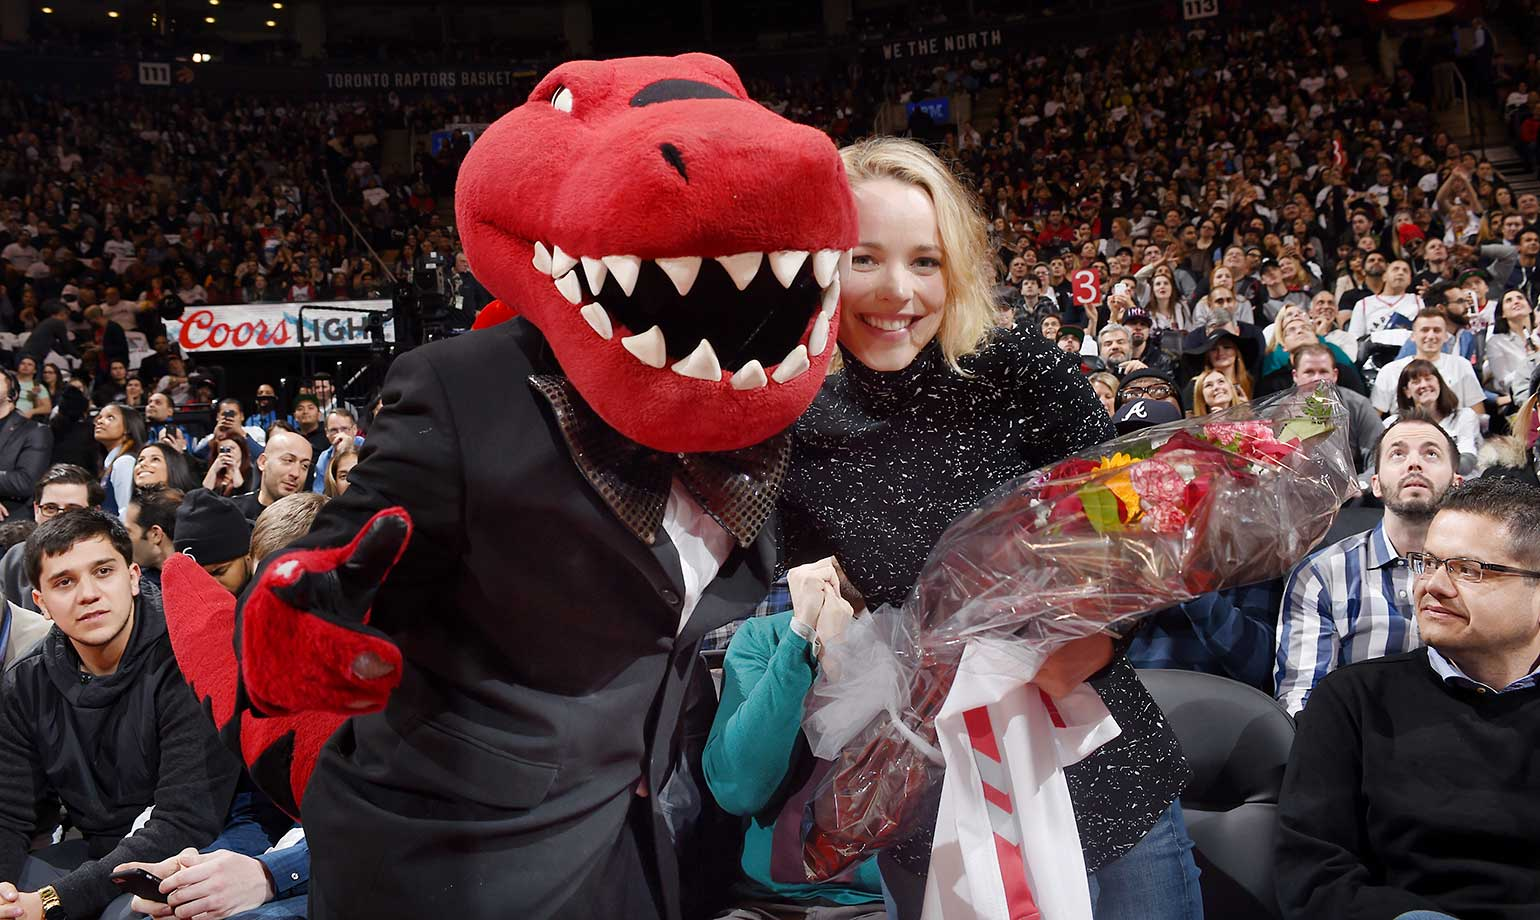 The Toronto Raptors mascot poses with actress Rachael McAdams during the game against the Miami Heat.